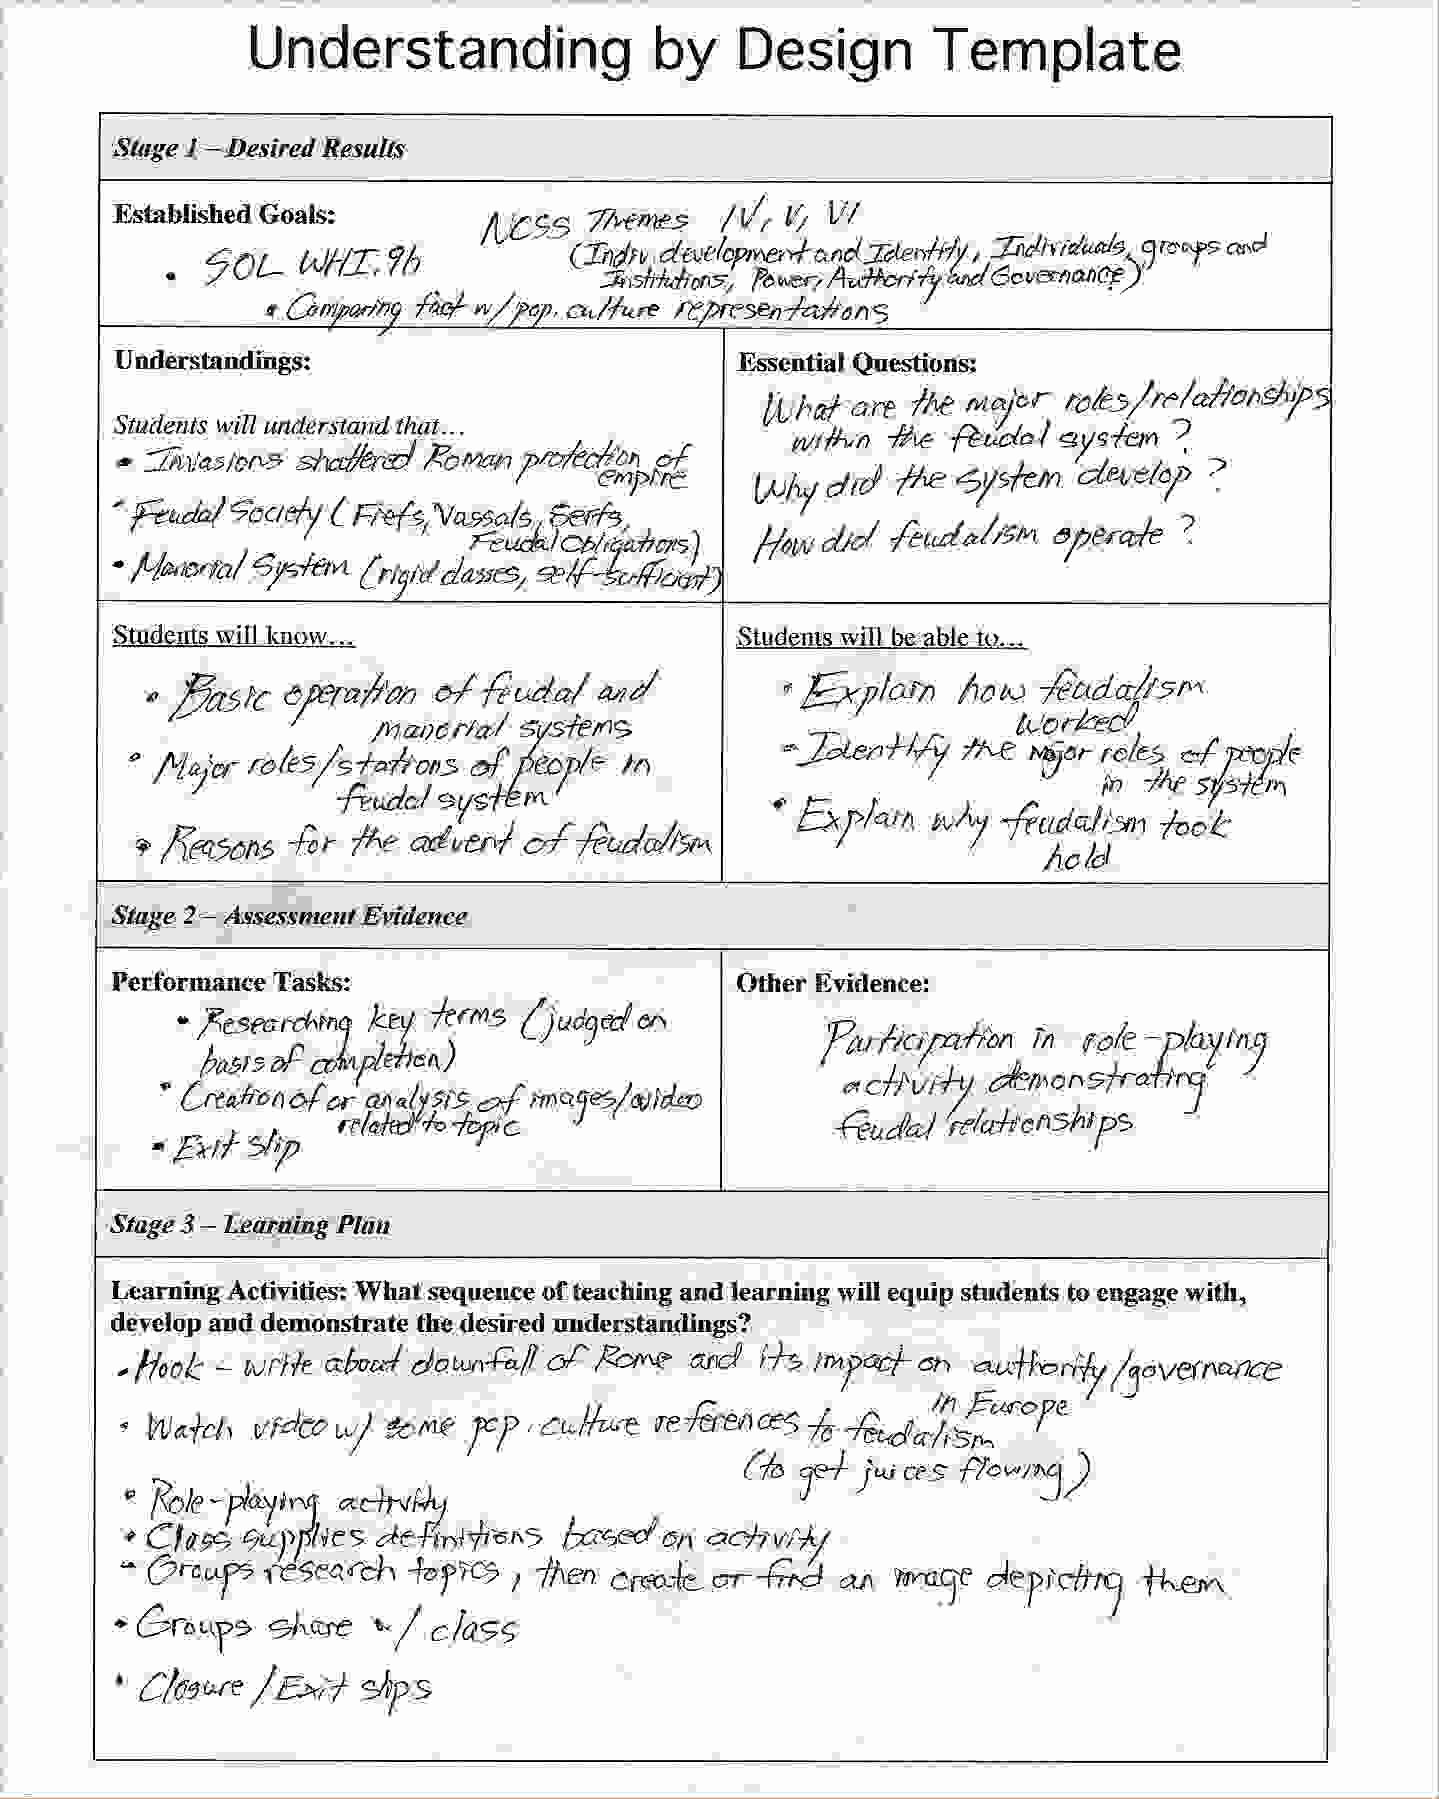 Lesson Plan Template Doc Luxury Understanding by Design Template